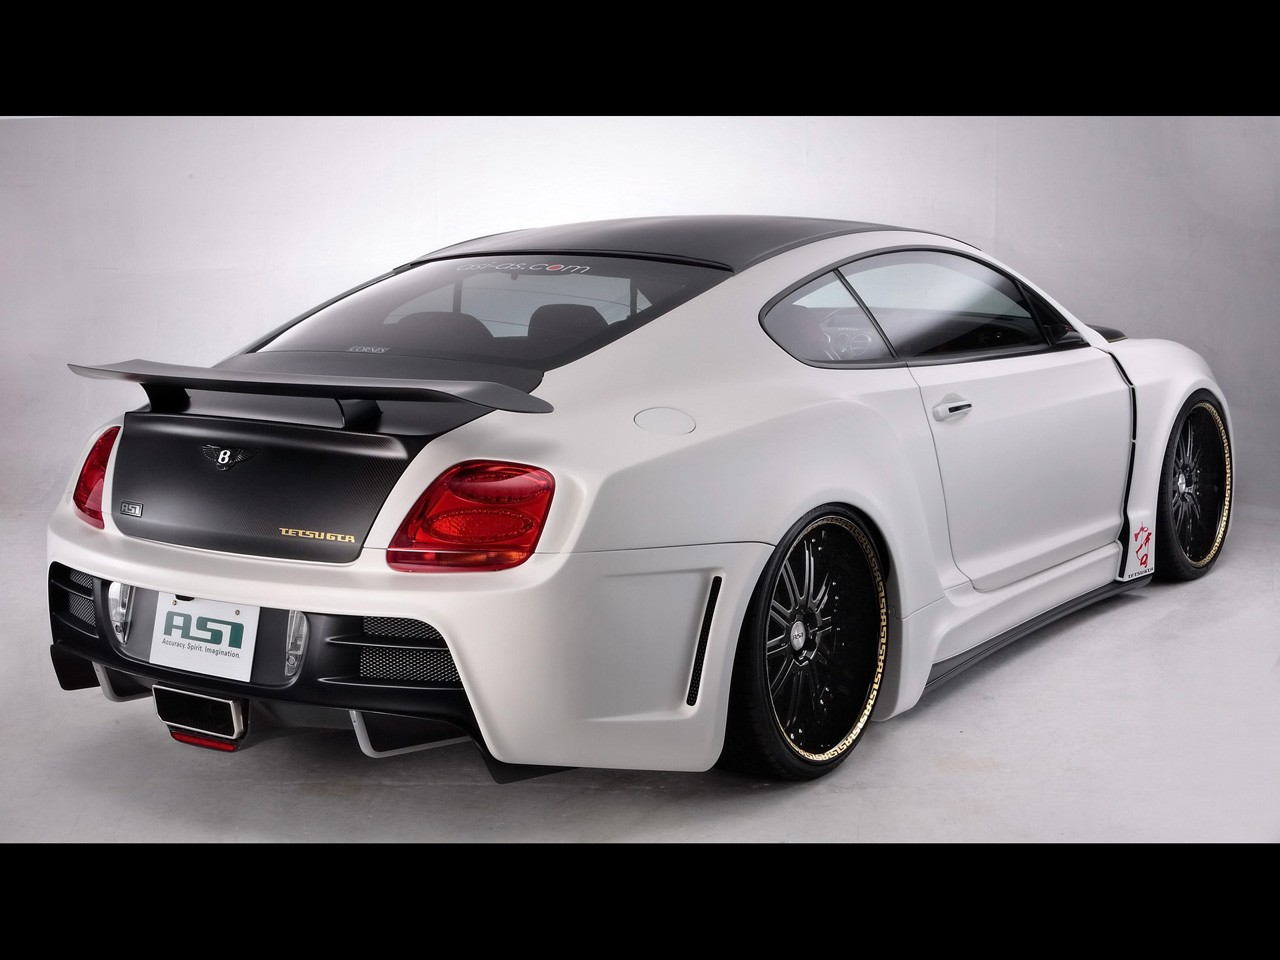 2008 ASI Bentley Continental Tetsu GTR